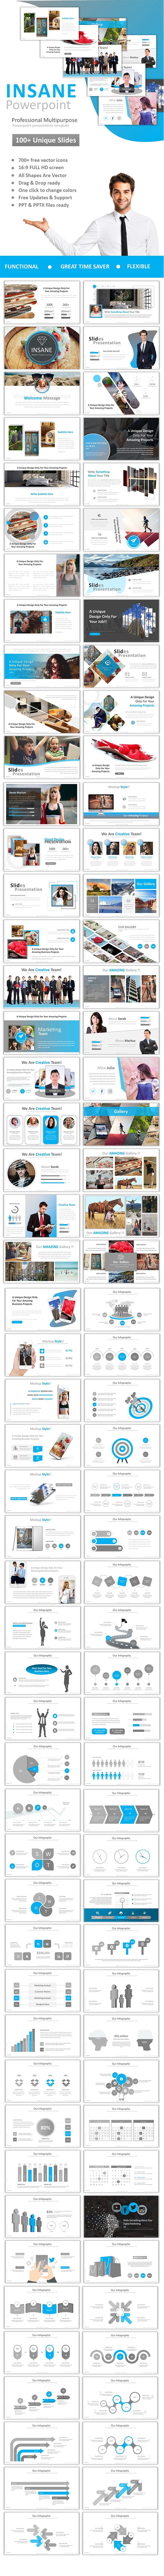 insane modern powerpoint business powerpoint templates